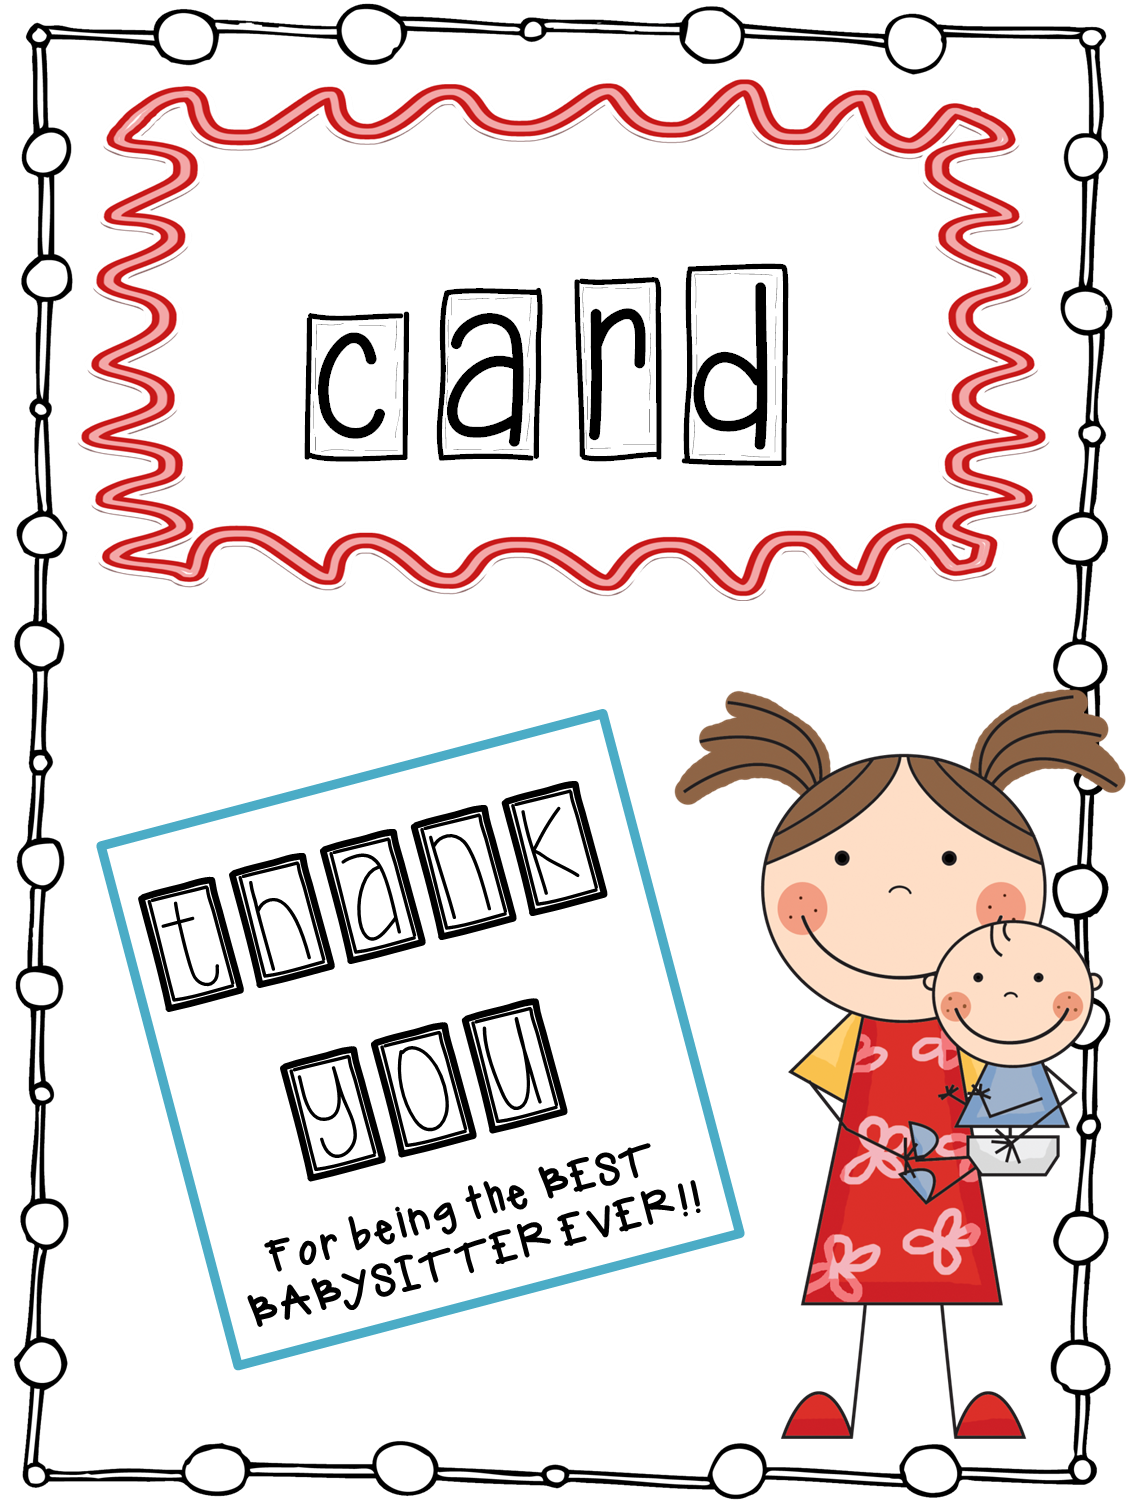 Letterland annie apple clipart graphic royalty free TeachersHQ graphic royalty free